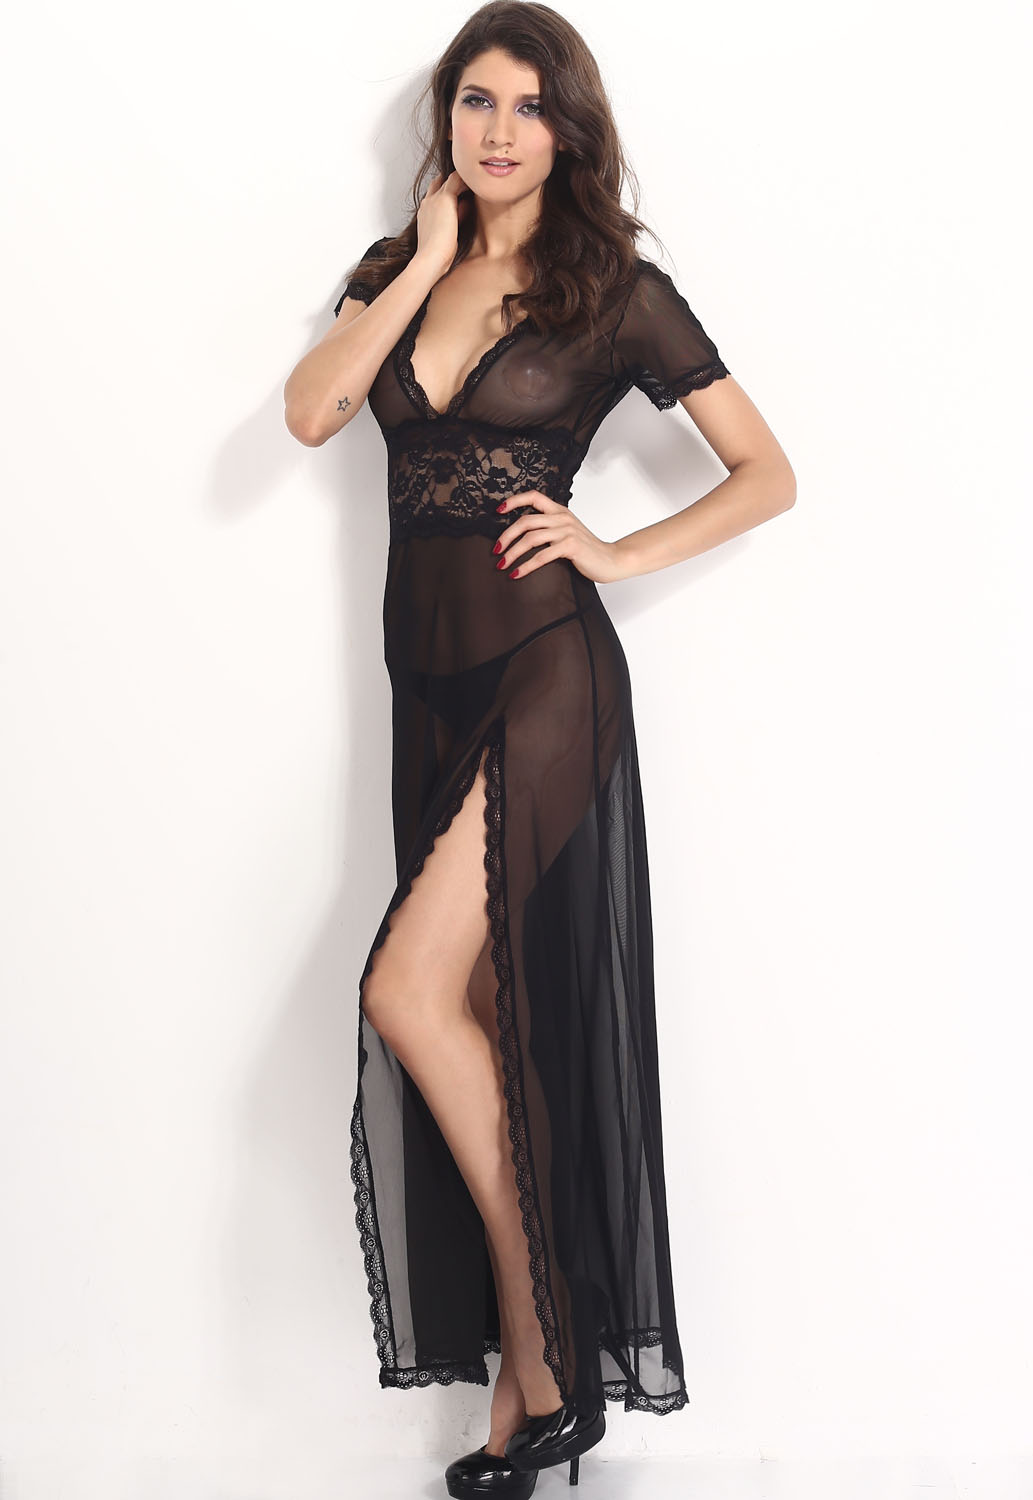 Plus Size Red Mesh and Lace V Neck Lingerie Gown [LC6366] - $12.99 ...